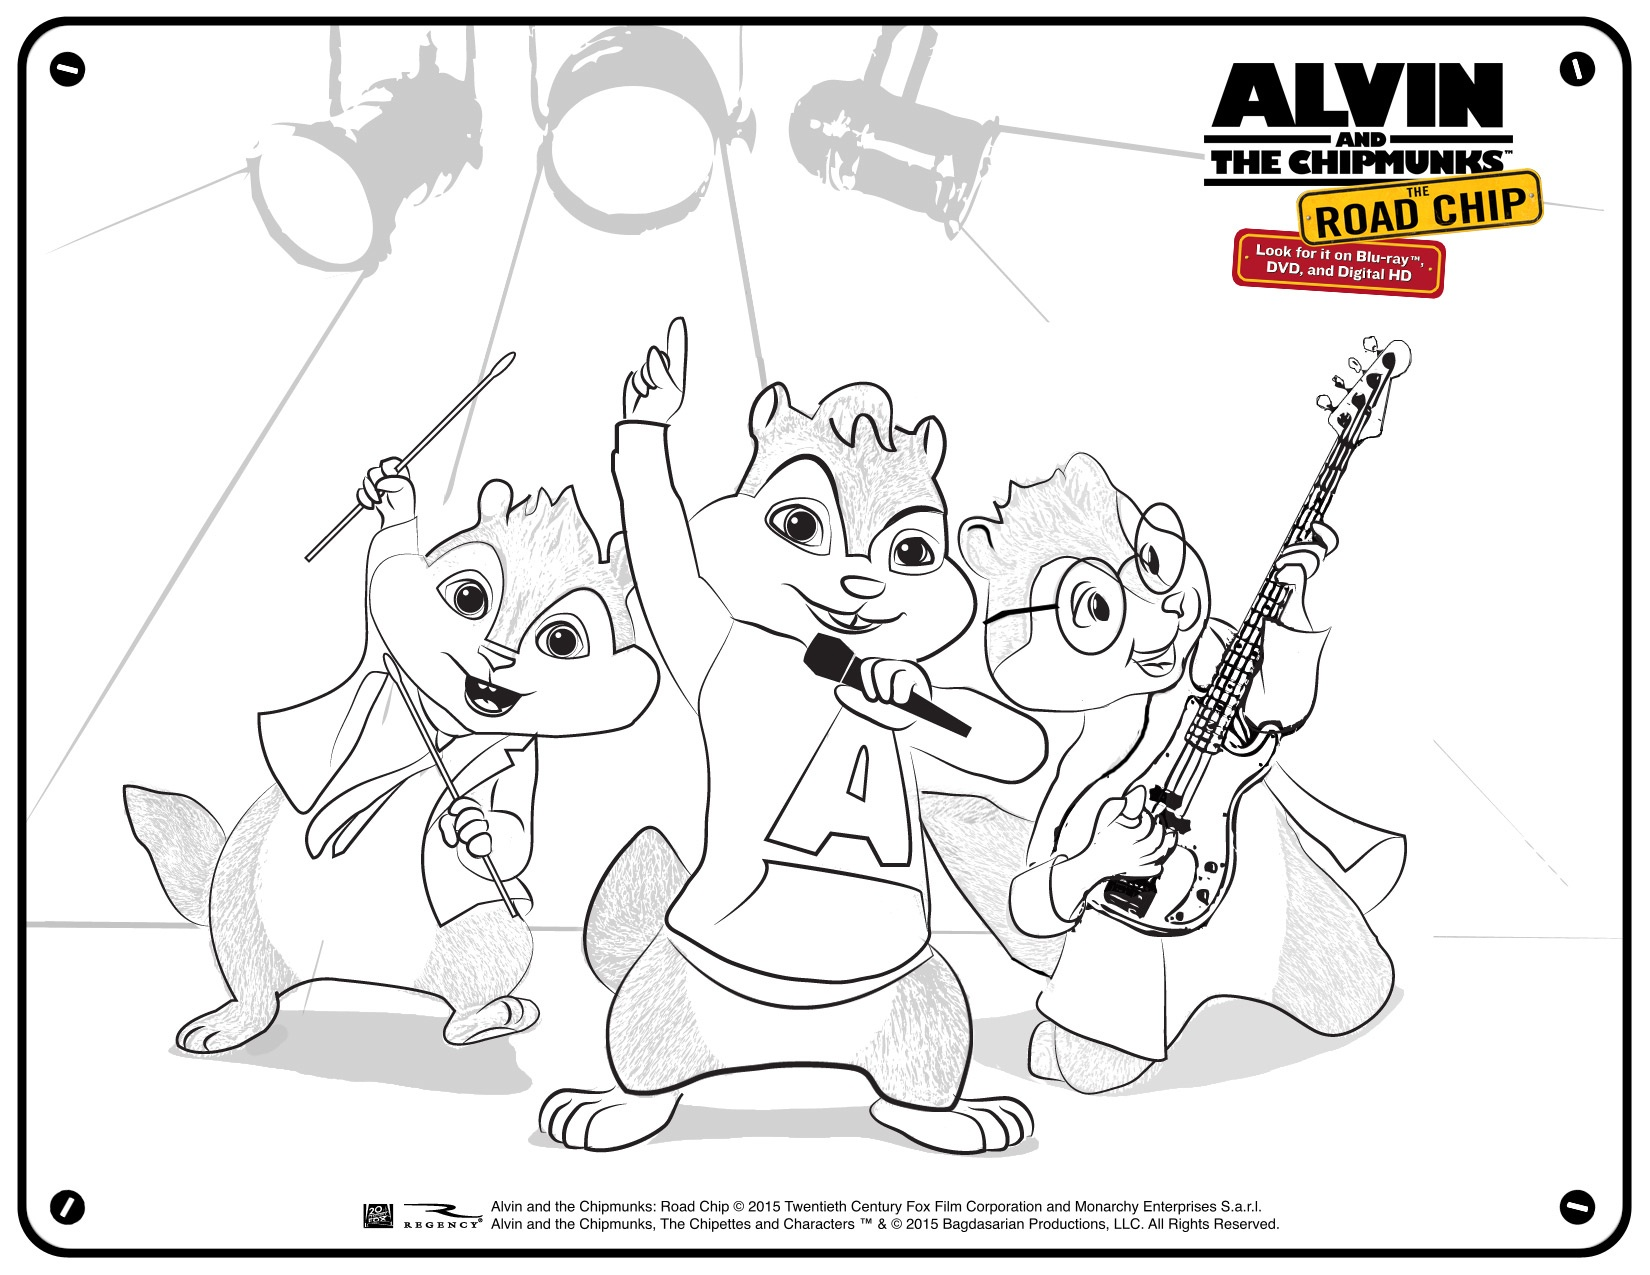 Alvin And The Chipmunks - Road Chip Partner Toolkit - Free Printable Chipmunk Mask